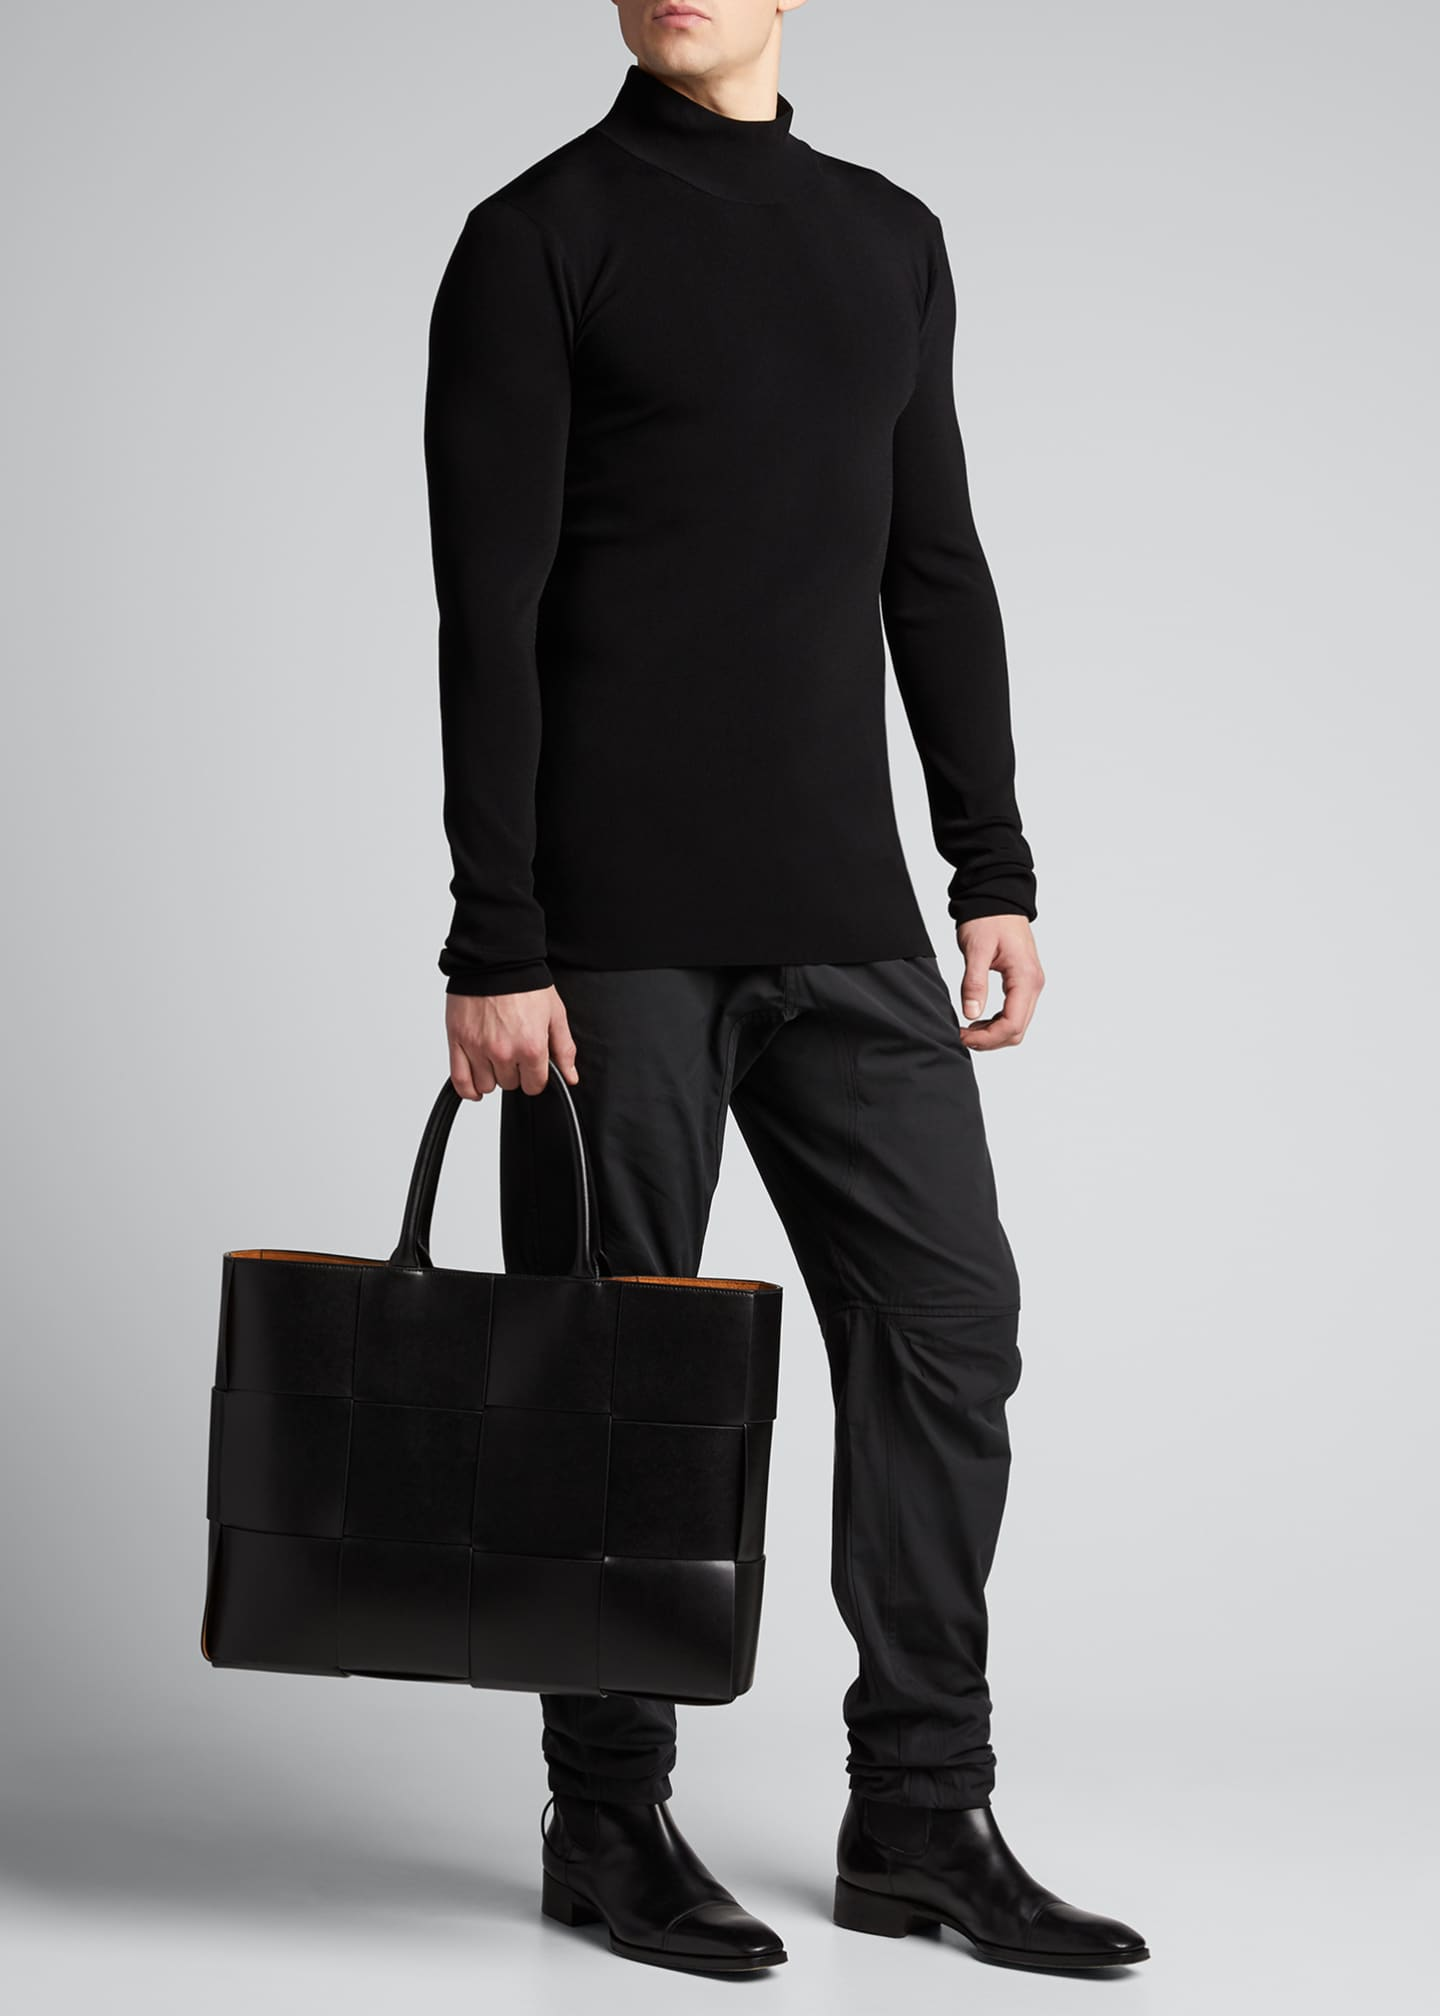 Image 5 of 5: Men's Borsa Large Woven Leather Tote Bag